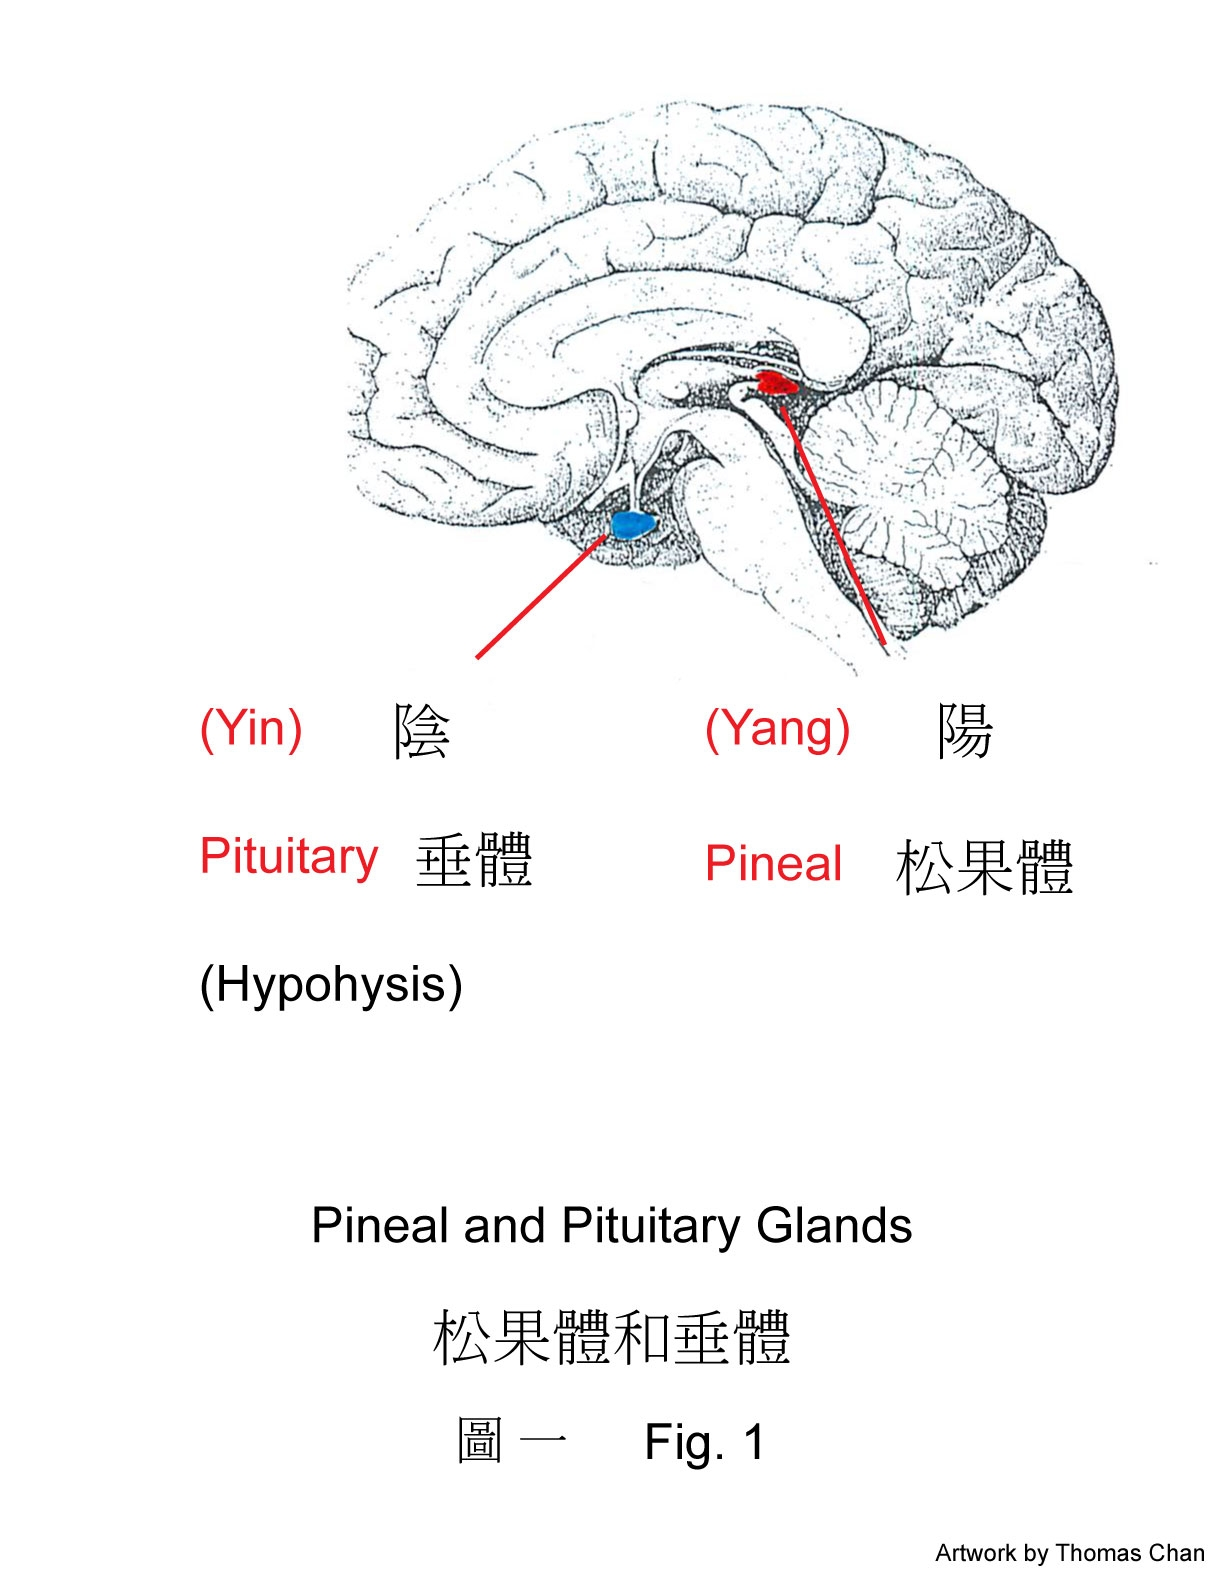 emotional brain: meditation – ventricles and limbic system – dao and